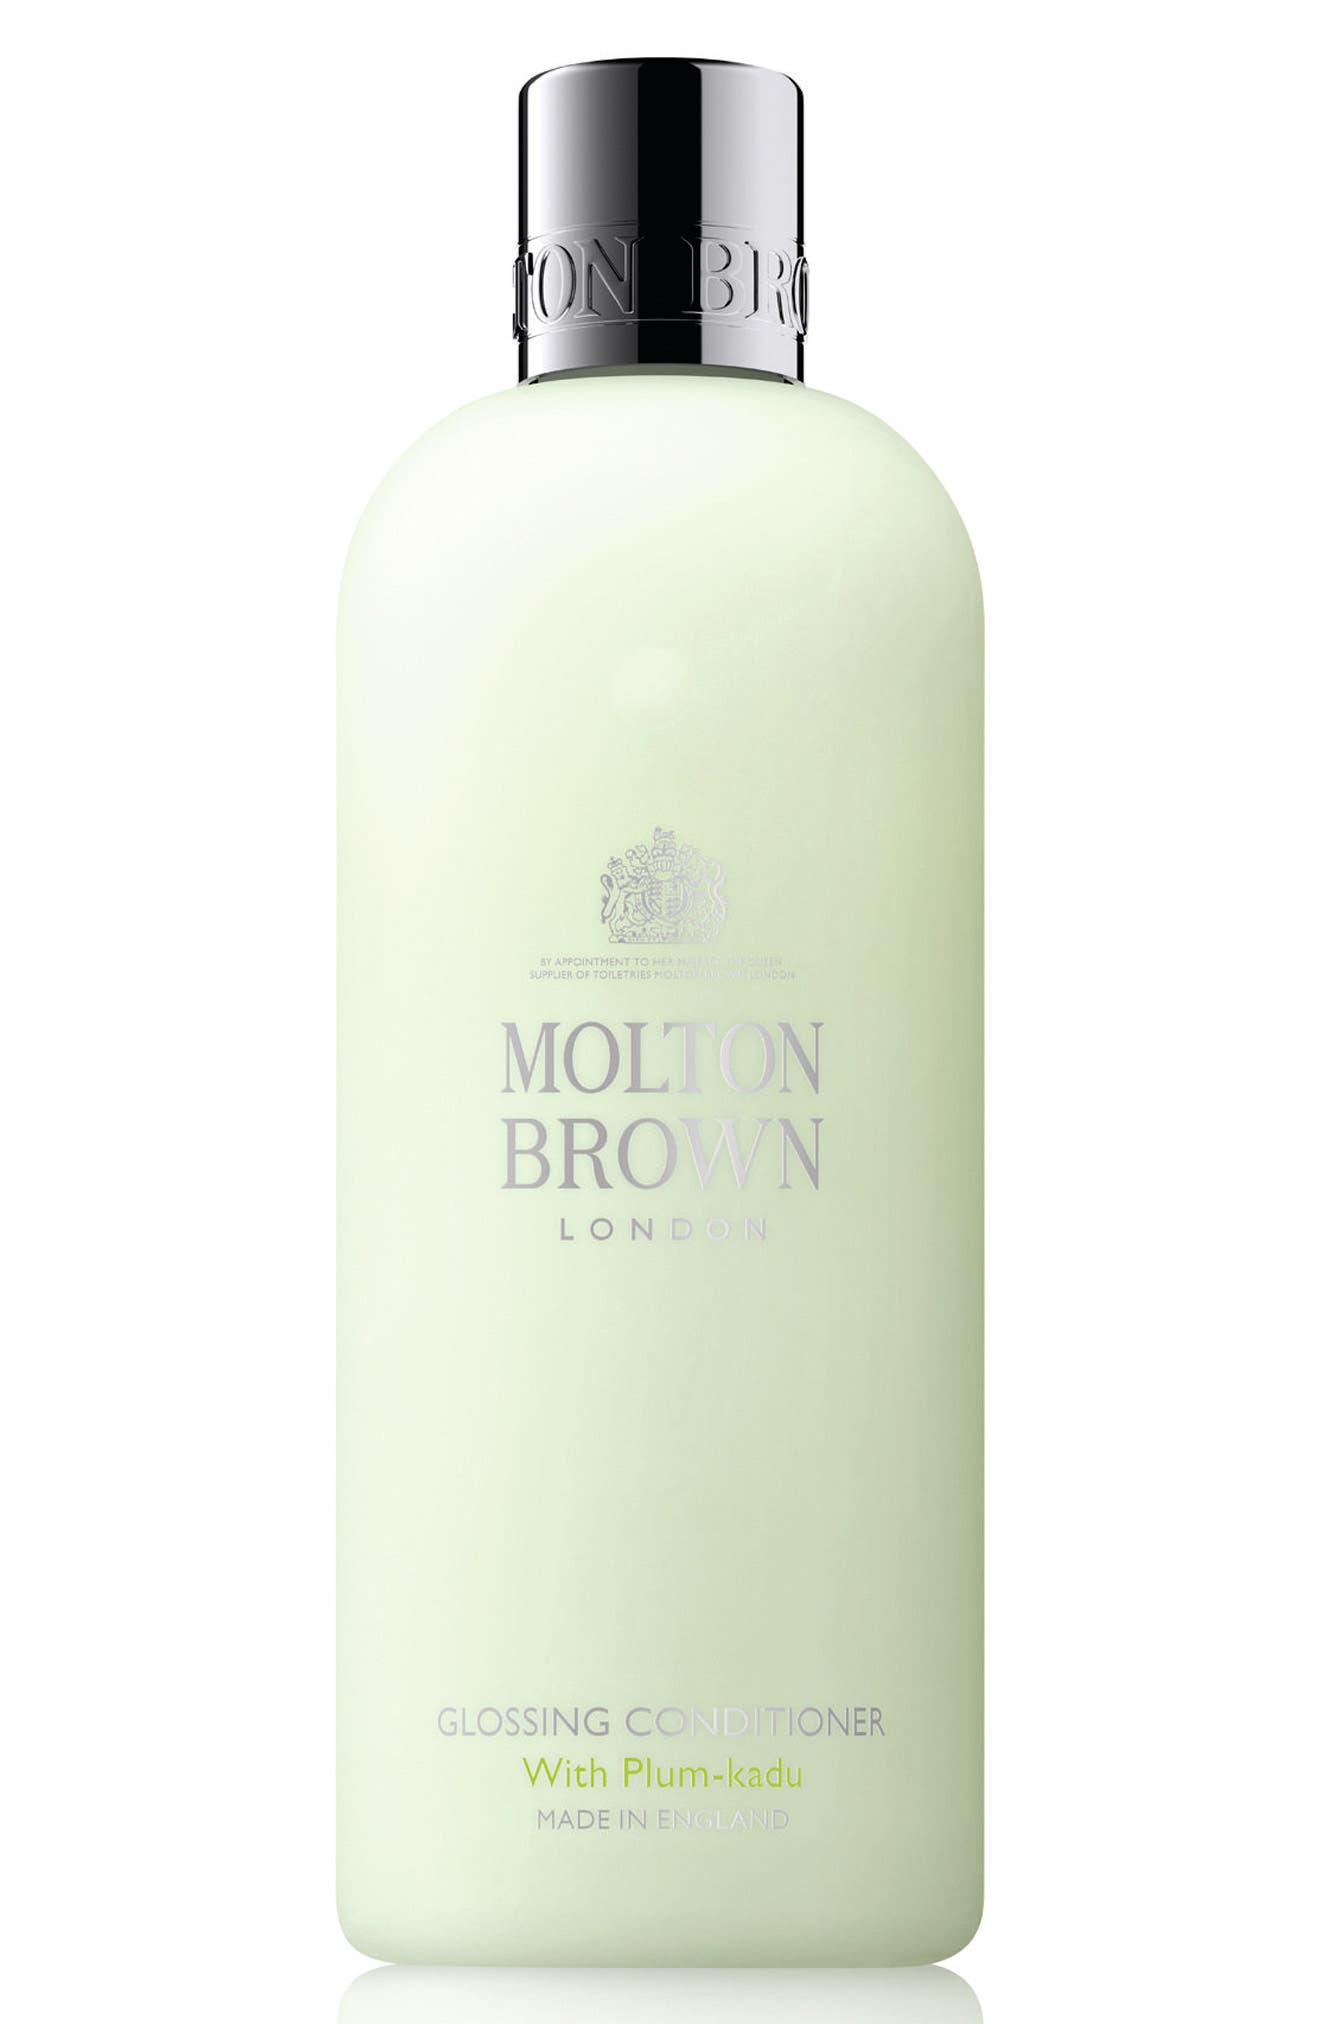 Main Image - MOLTON BROWN London Glossing Conditioner with Plum Kadu